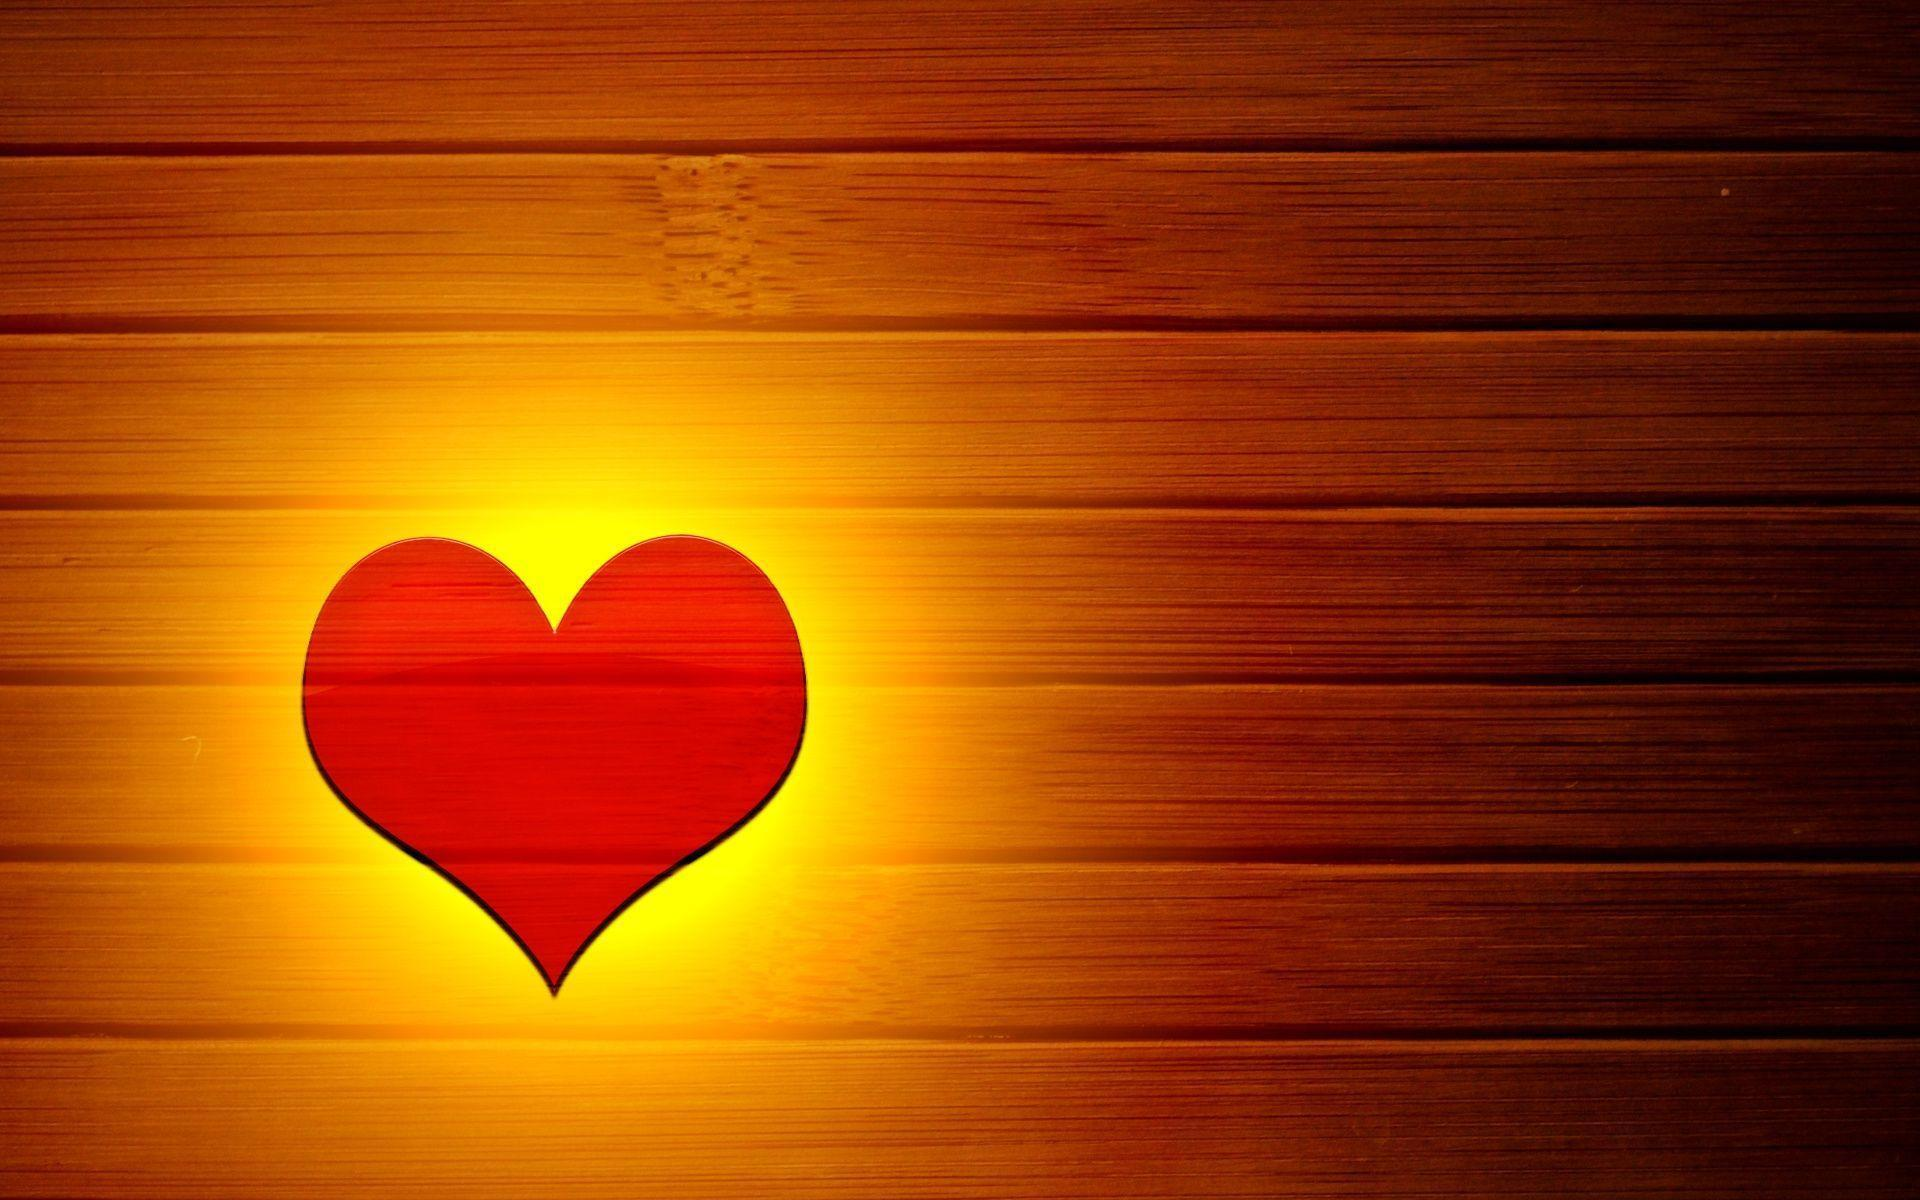 Wallpaper For Laptop Of Love : Love Backgrounds Wallpapers - Wallpaper cave